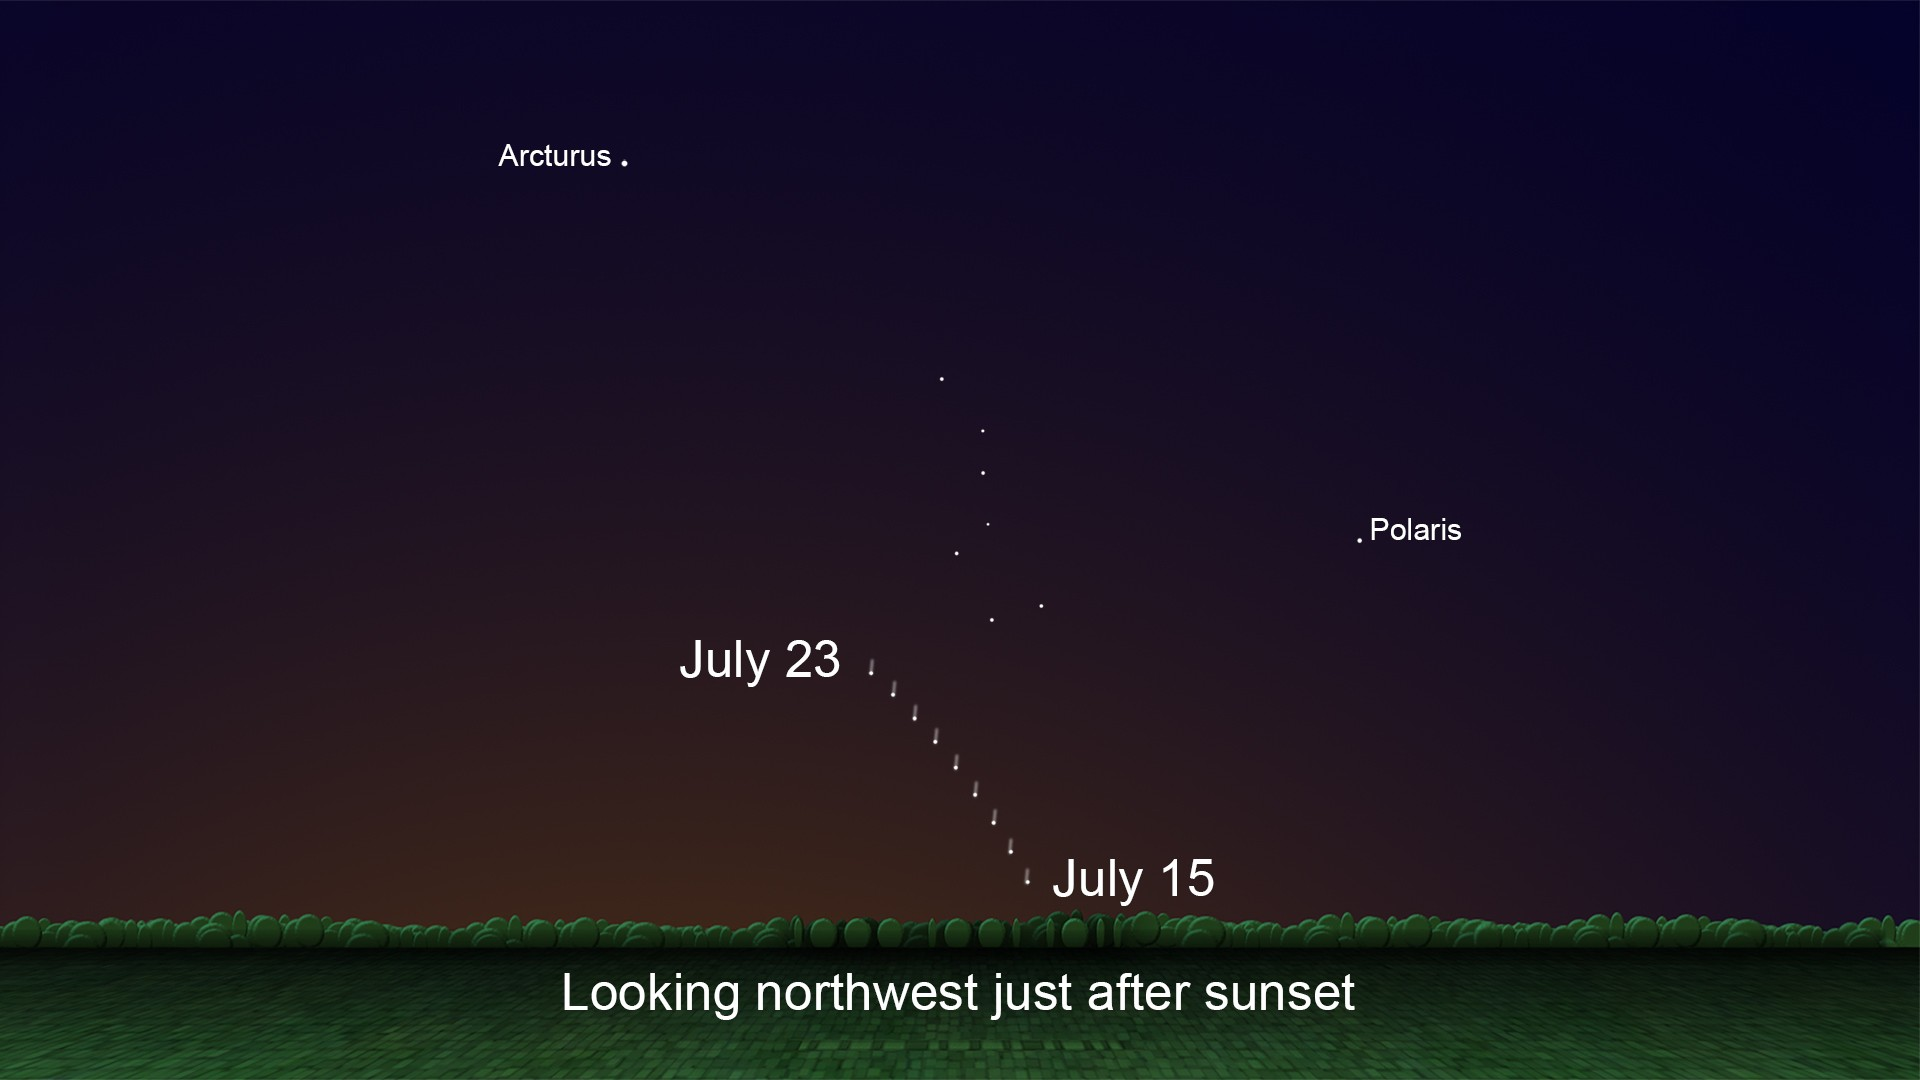 Skychart showing the location of Comet C/2020 F3 just after sunset, July 15 through 23 Credit: NASA/JPL-Caltech